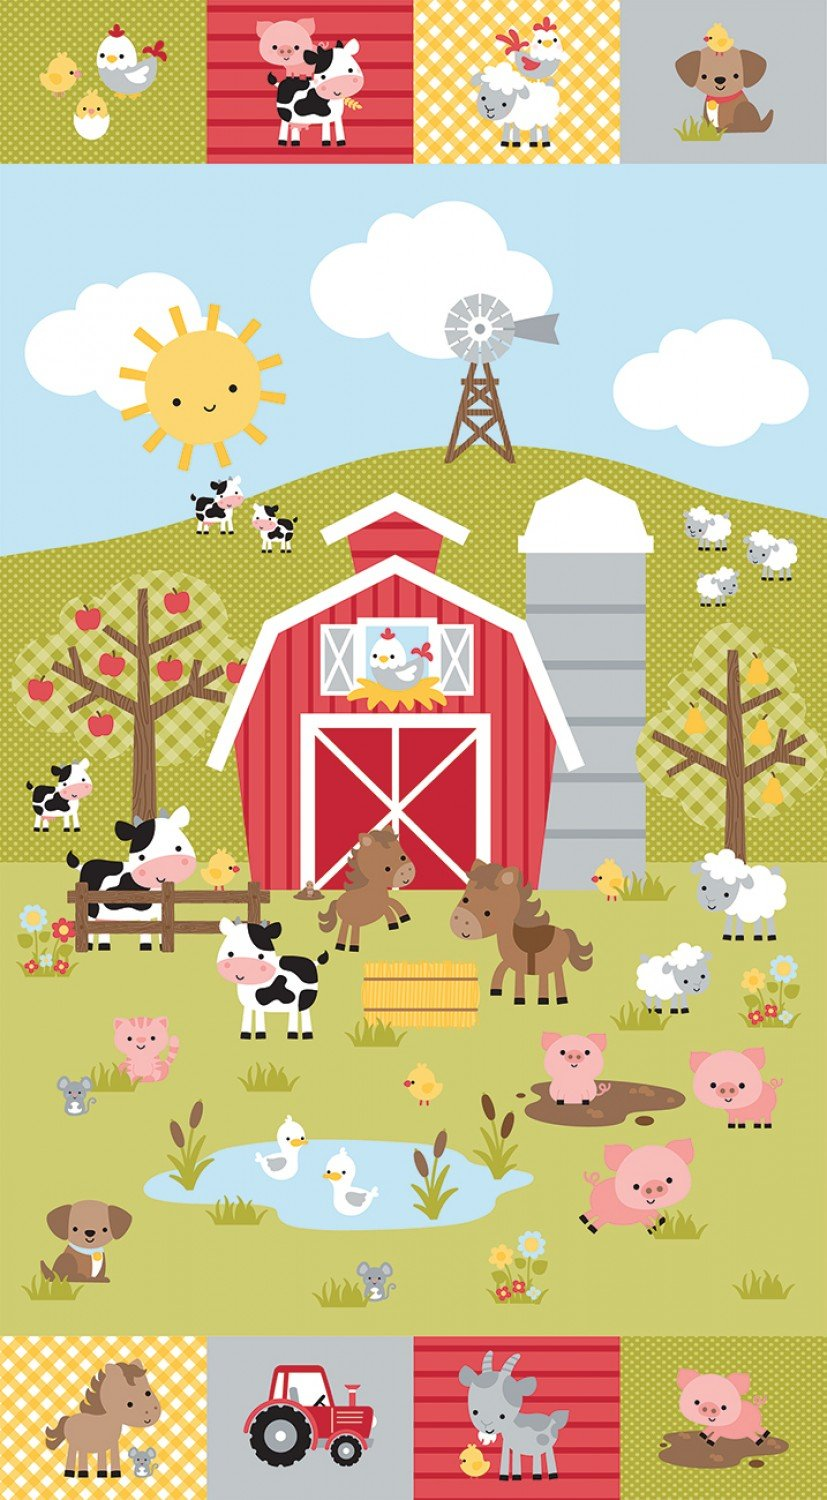 Down On The Farm Children's Fabric Panel 24 x 44 Inches